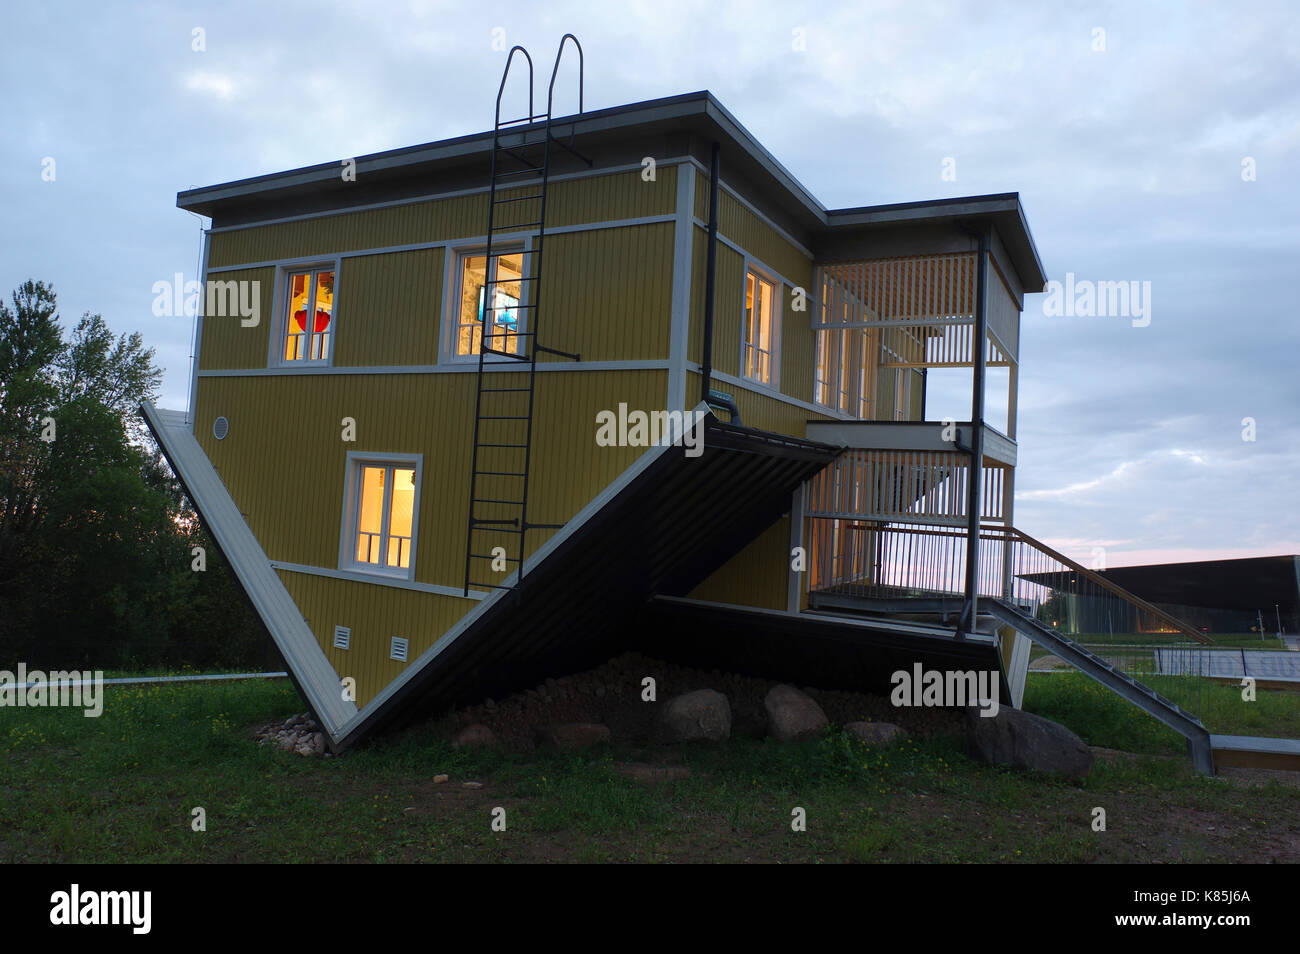 Upside down house in Tartu. Estonia 17th September 2017 Stock Photo